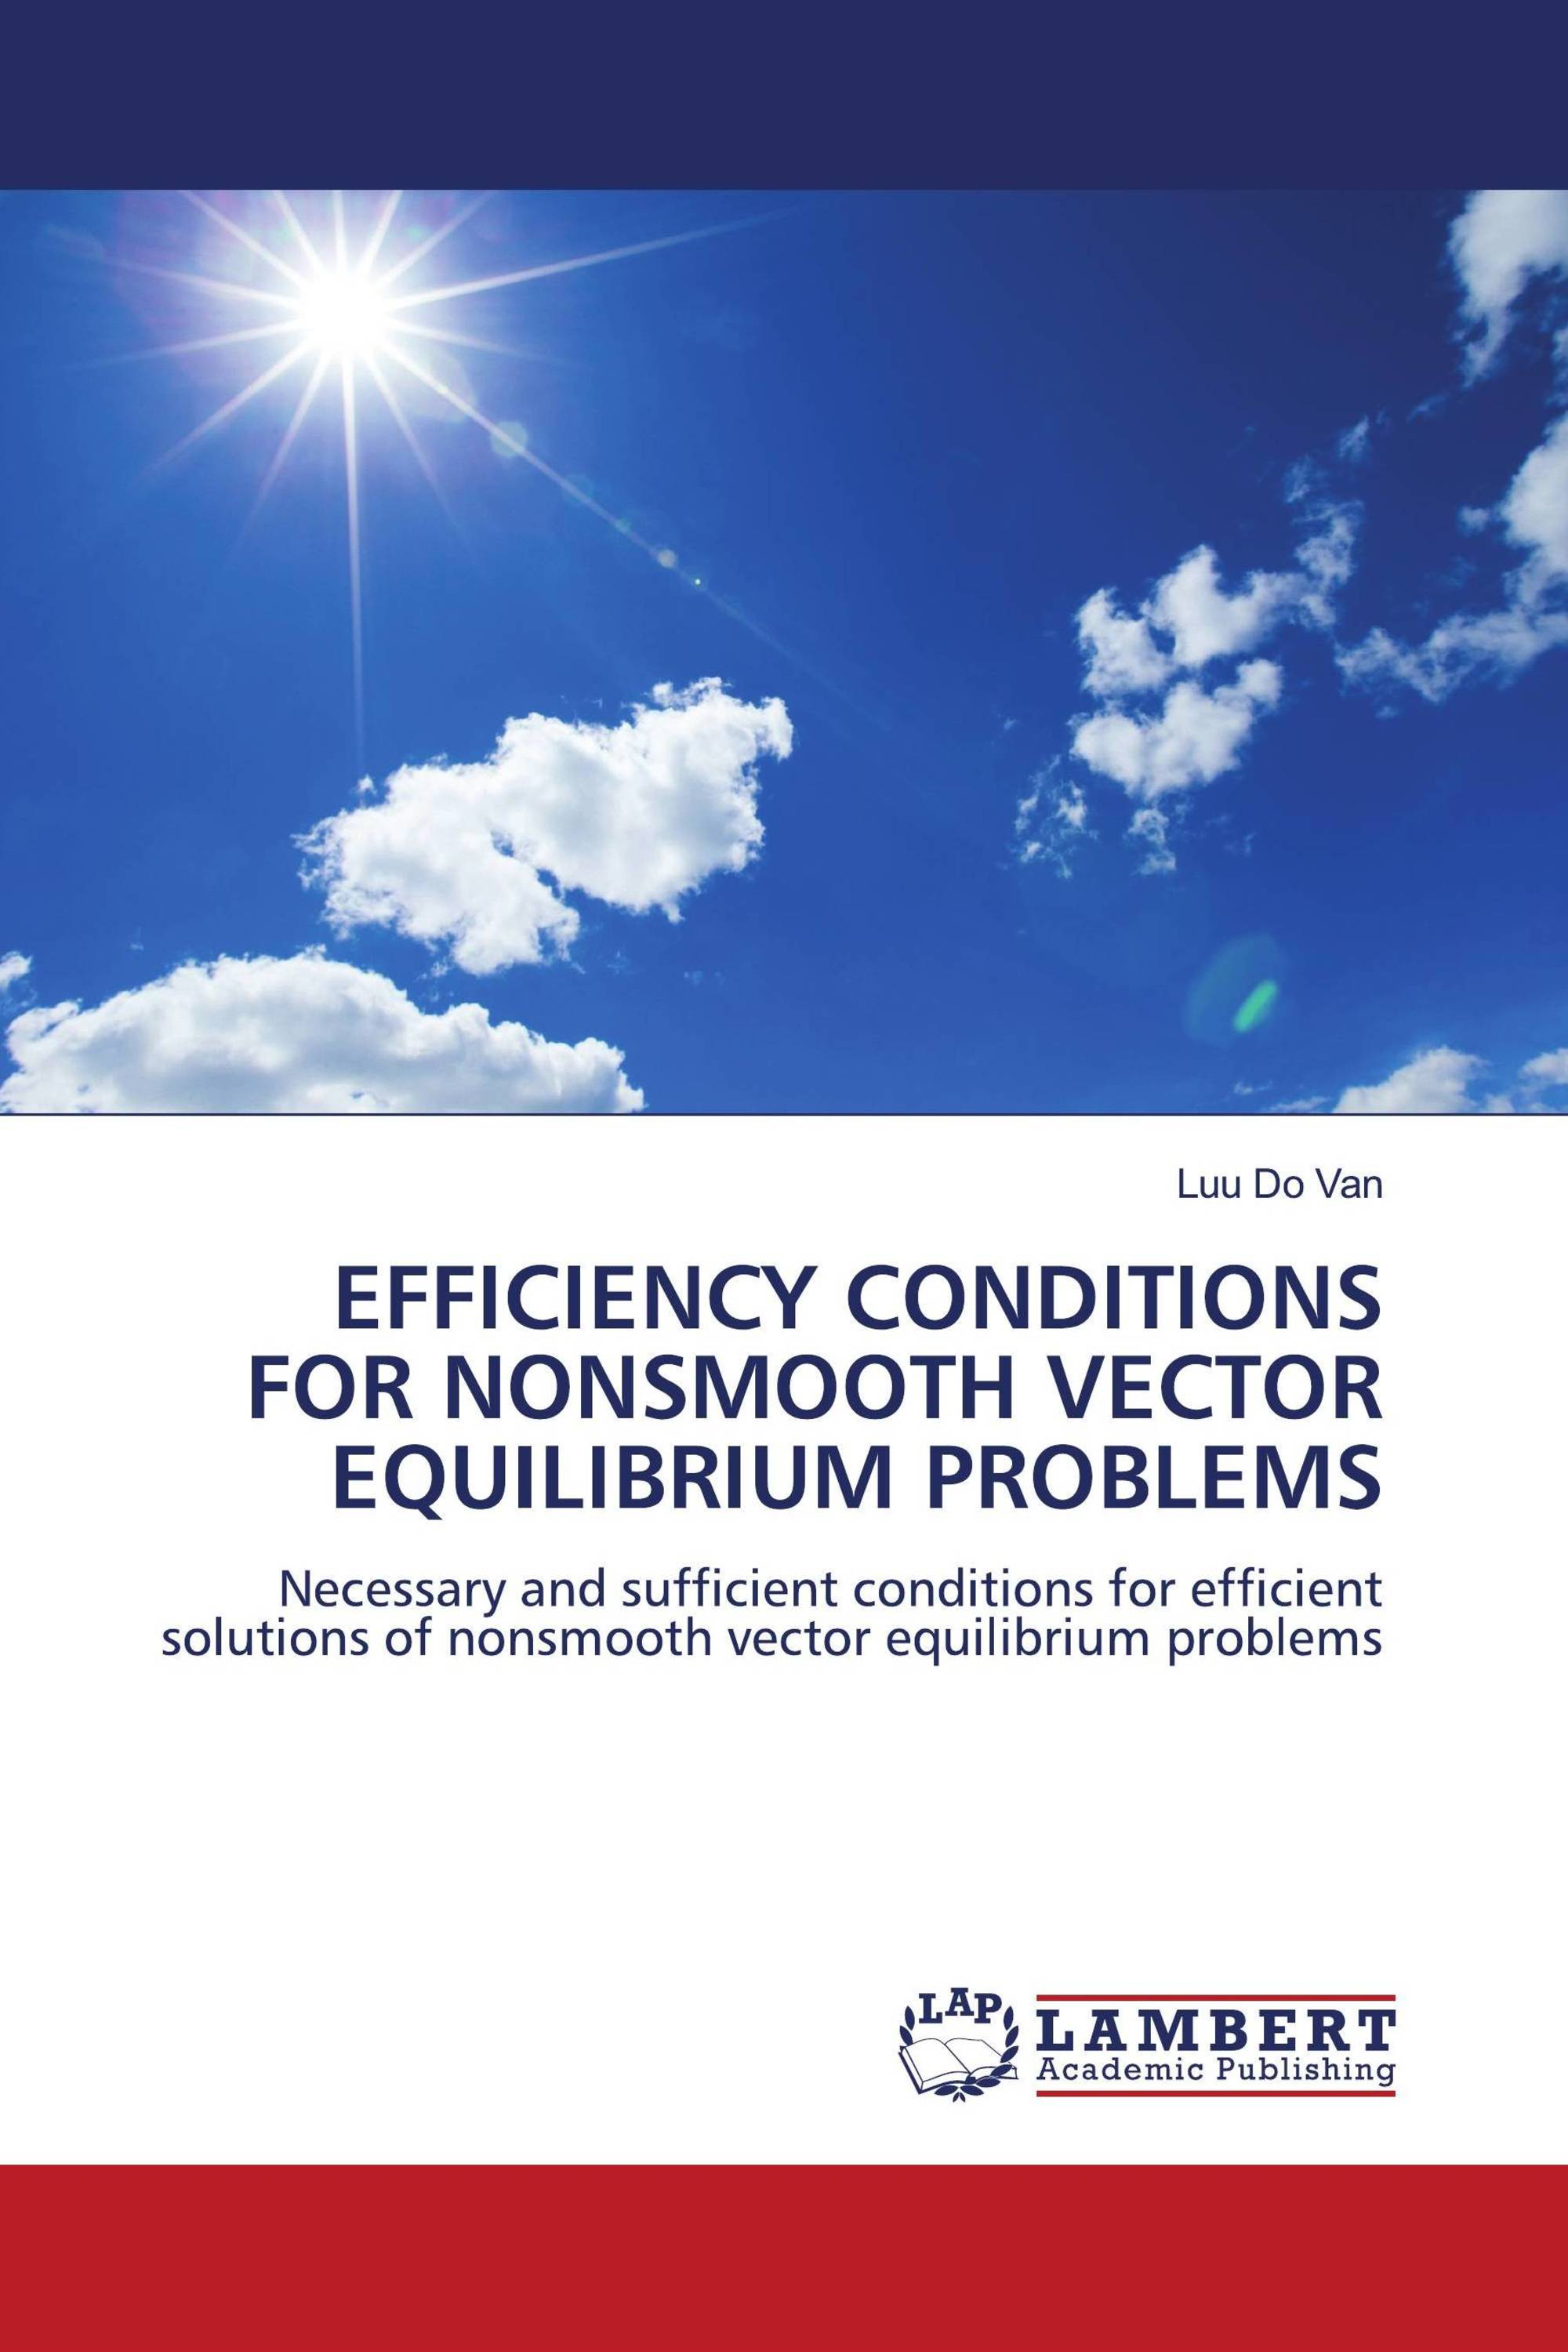 EFFICIENCY CONDITIONS FOR NONSMOOTH VECTOR EQUILIBRIUM PROBLEMS